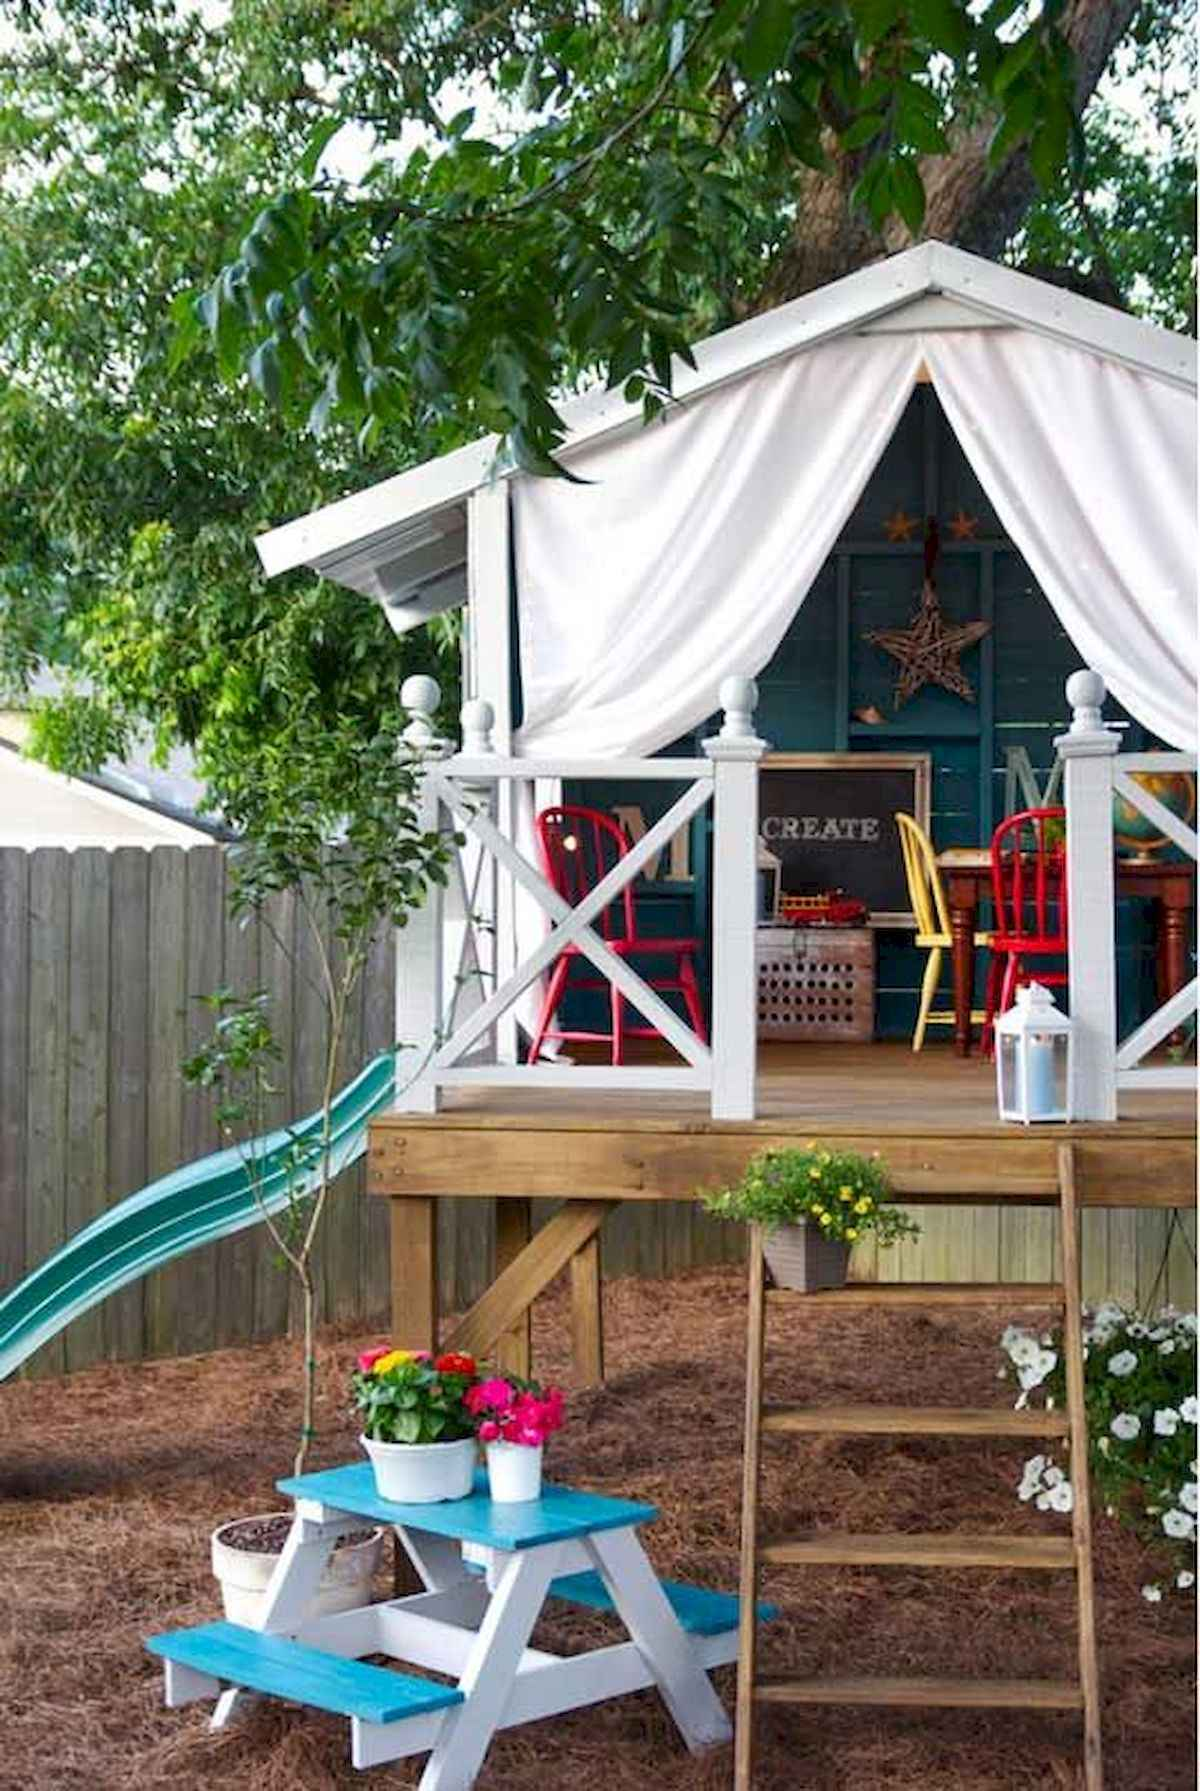 80 DIY Summery Backyard Projects Ideas Make Your Summer Awesome (22)